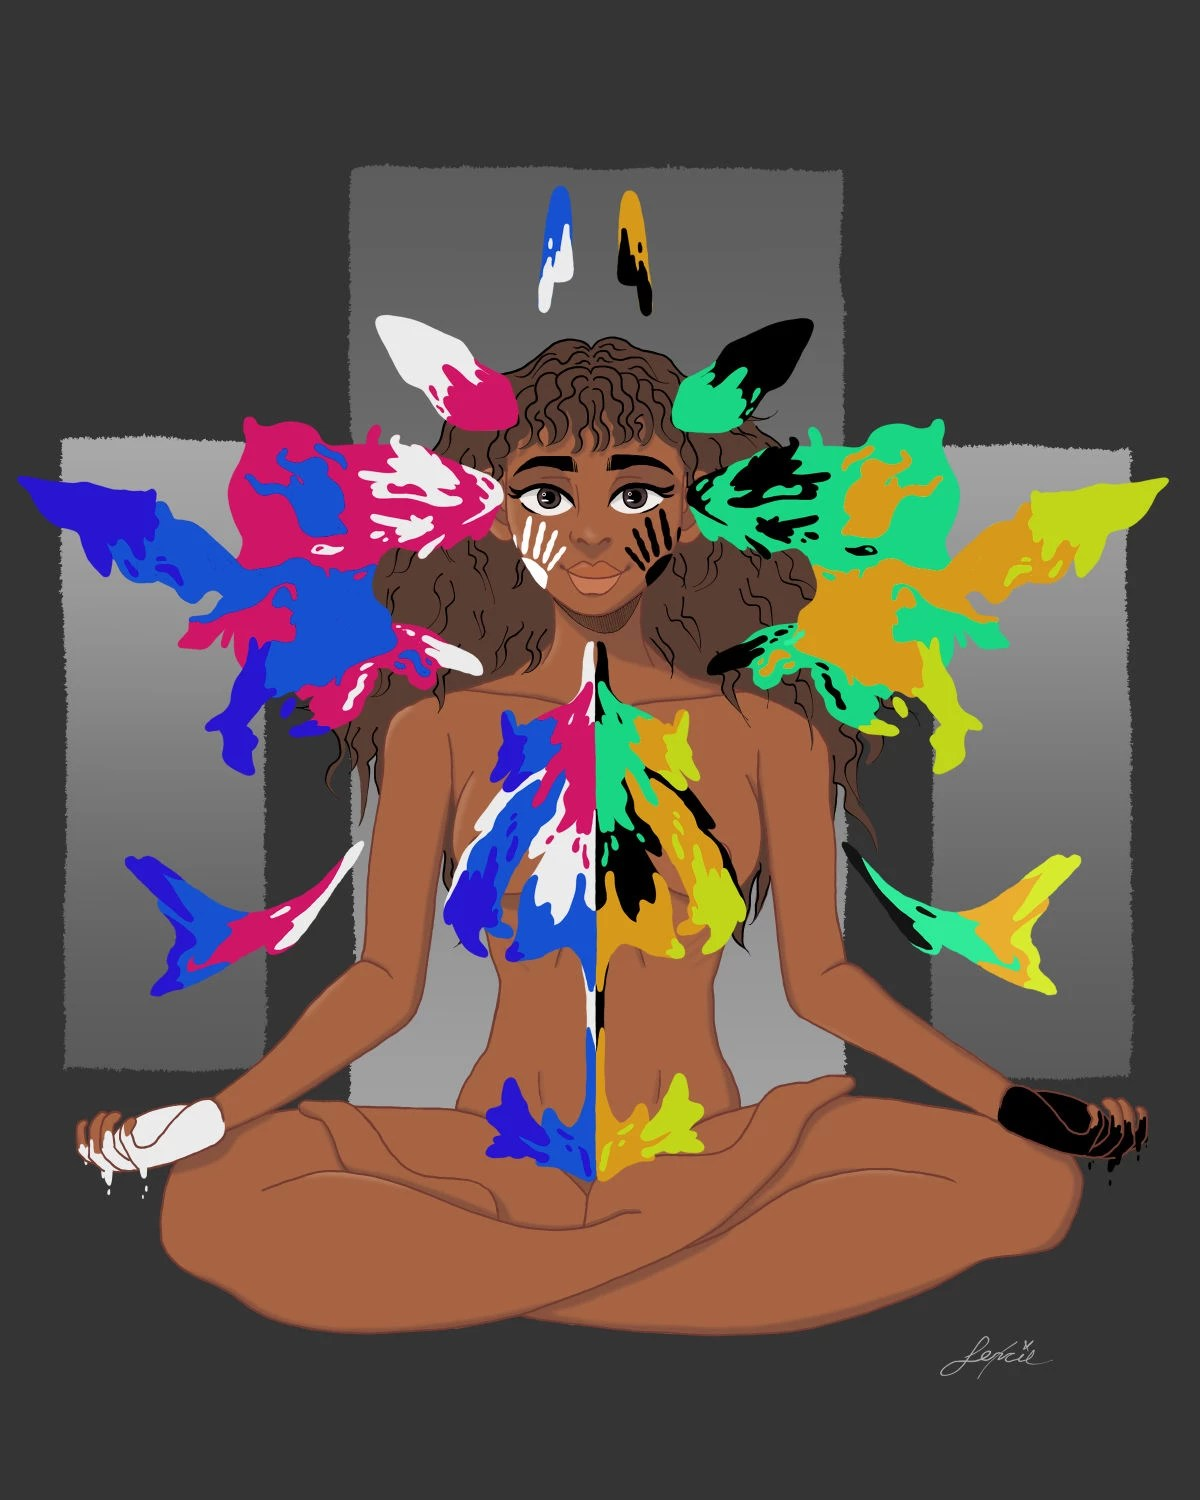 A digital illustration of a nude, young woman with brown skin sitting cross legged against a dark gray background with four gray squares behind her. The woman has curly brown hair and is smiling. Each of her hands are covered in black and white paint, which she has used to paint hand prints onto her face and body. The paint also extends beyond the woman and resembles a rorschach inkblot or butterfly wings. The paint is in shades of black, white, primary blue, fuschia, mint green, pumpkin orange, and yellow-green.